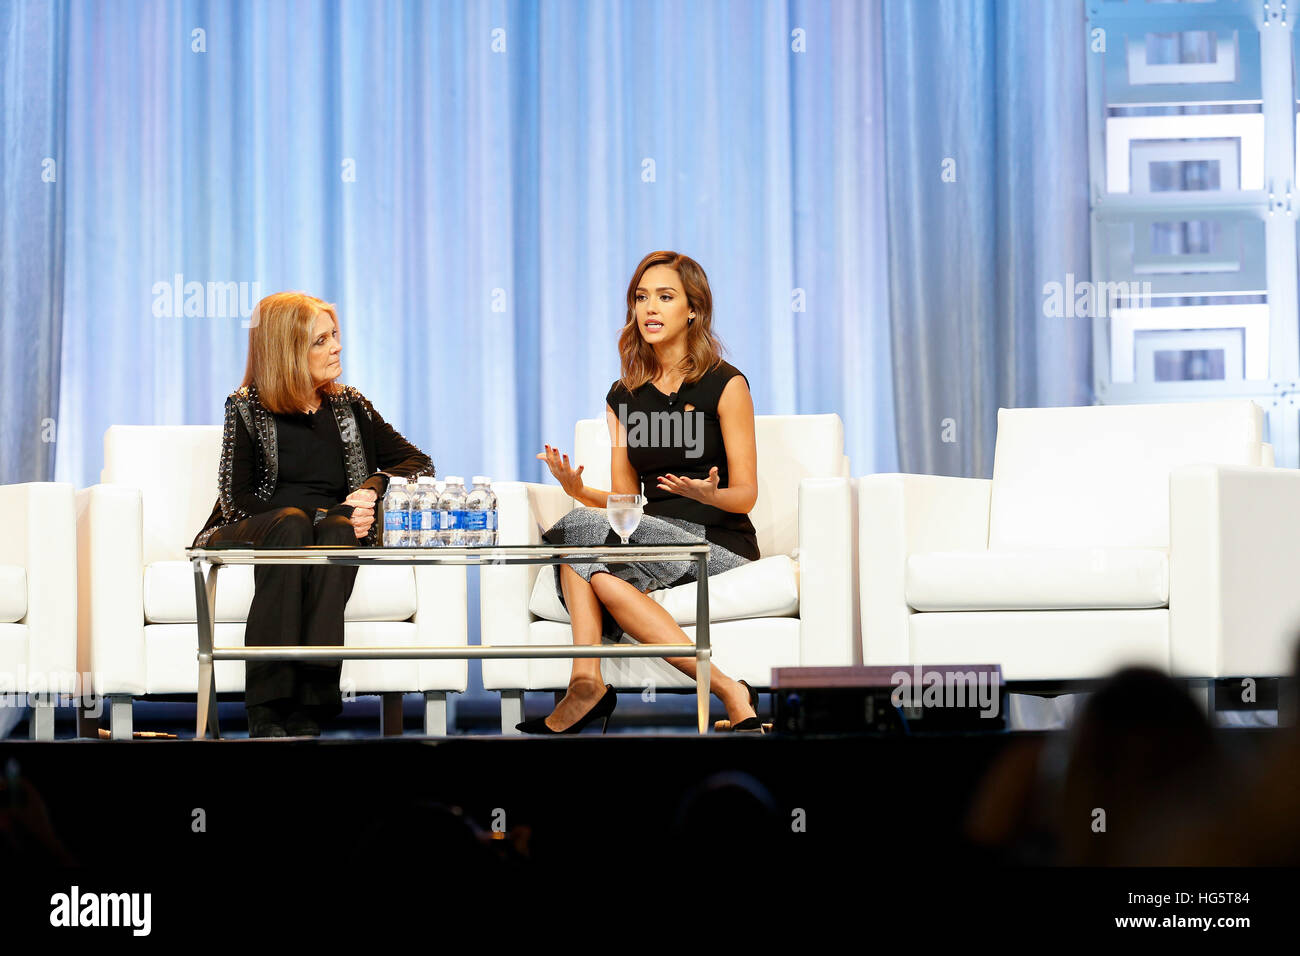 Summer Conference Keynoted By Jessica >> Jessica Alba And Gloria Steinem Speak During A Keynote Q A At The